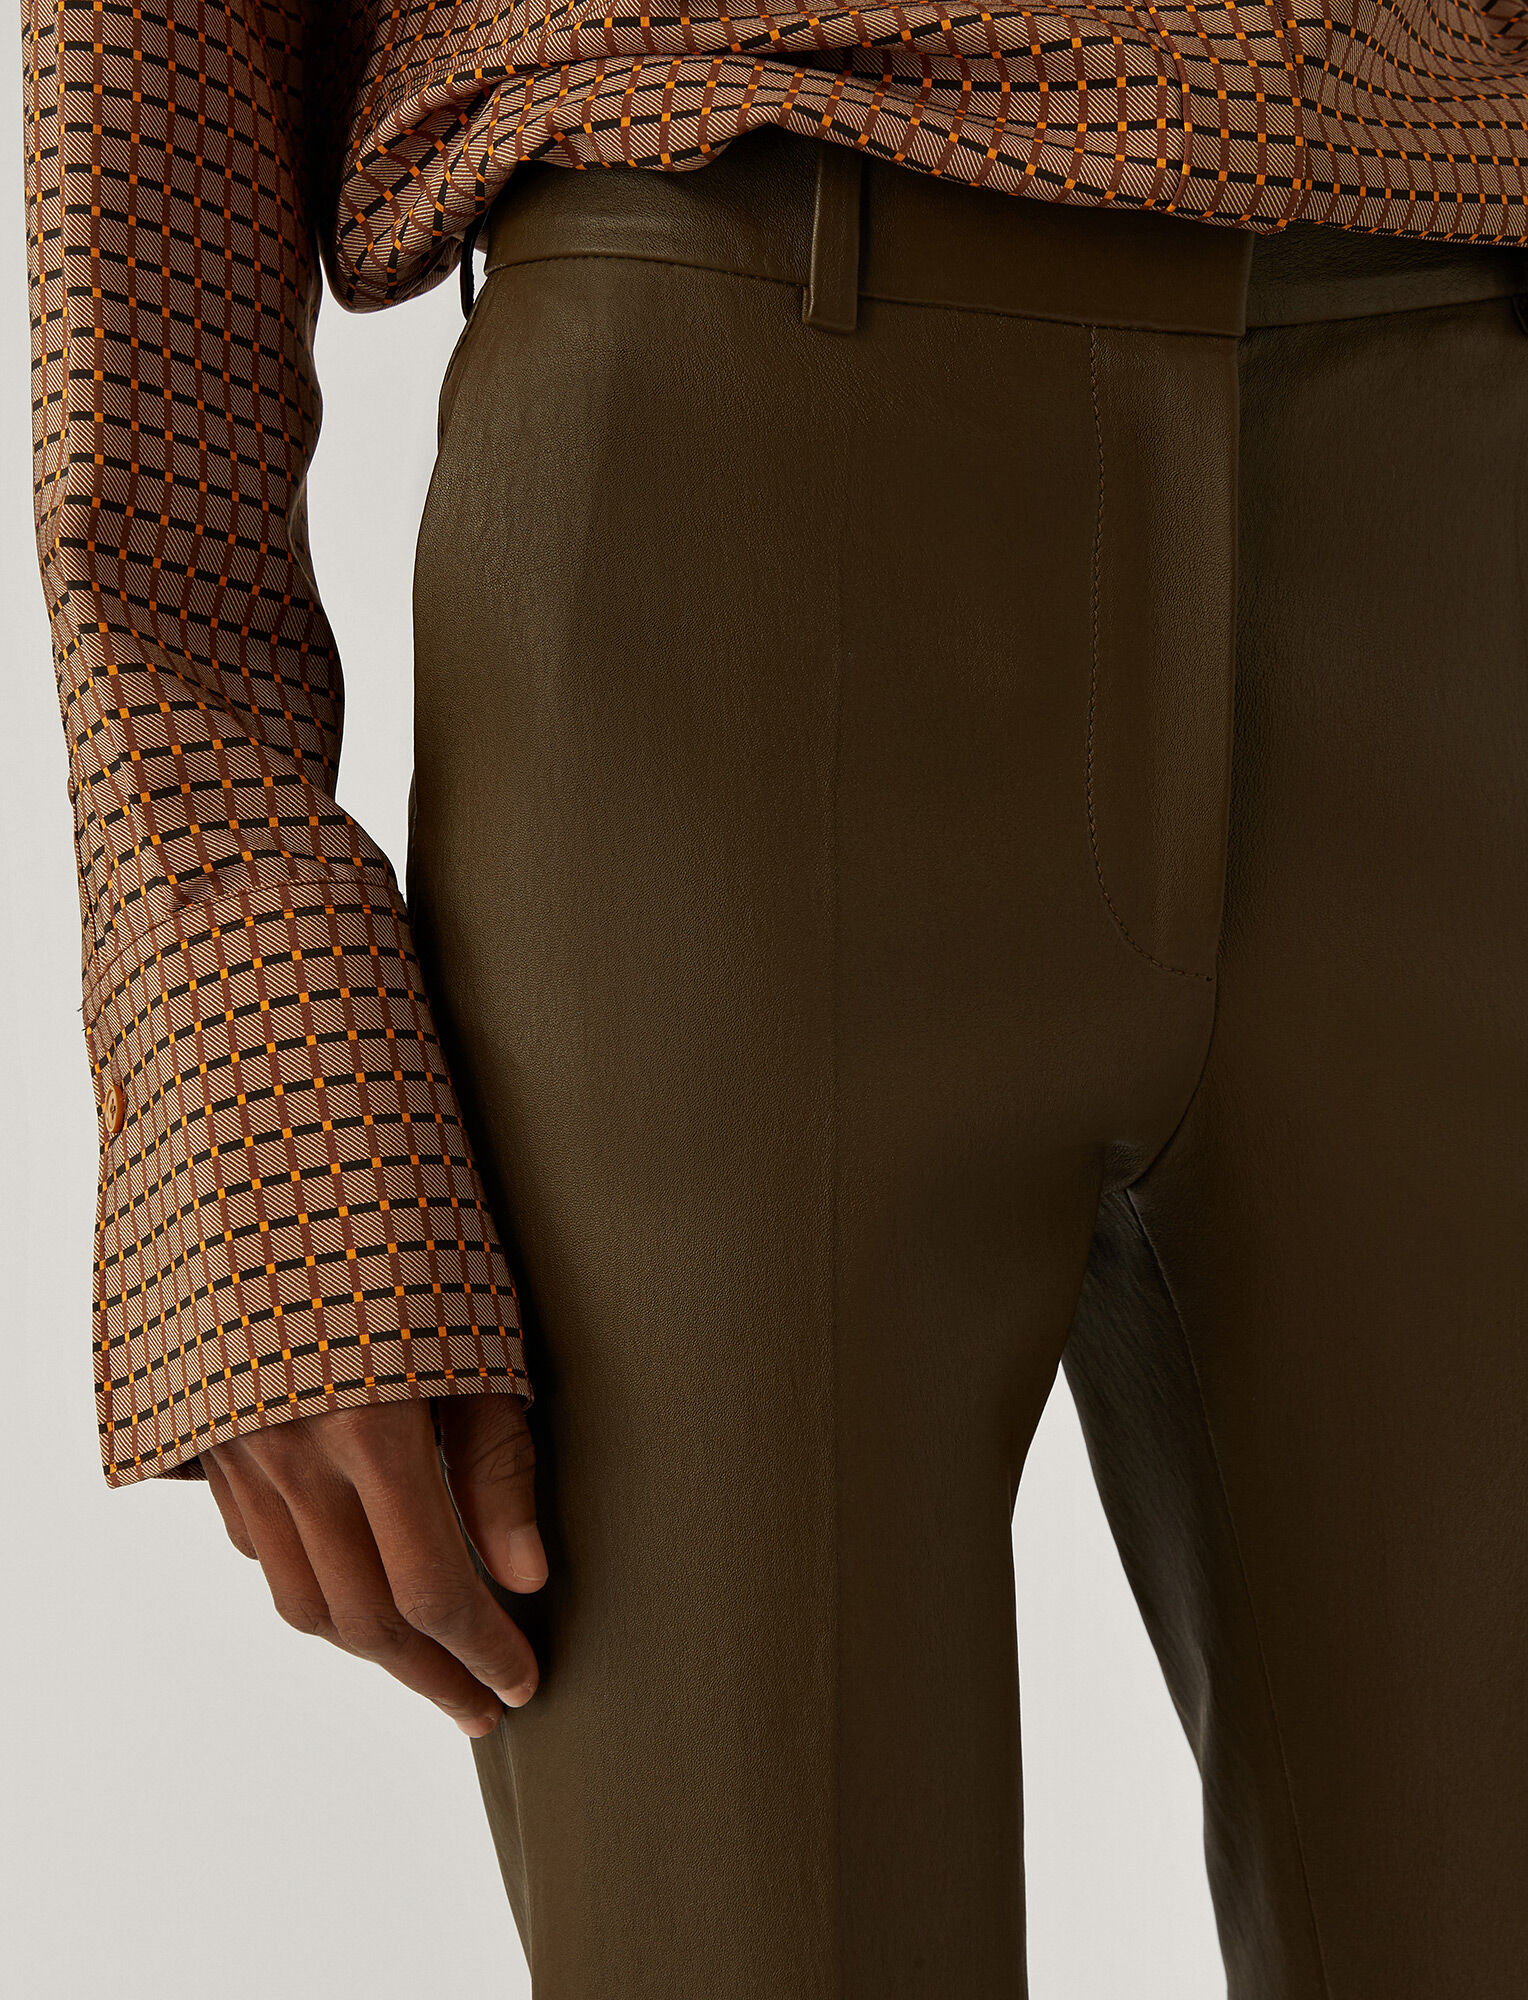 Joseph, Coleman Leather Stretch Trousers, in Moss